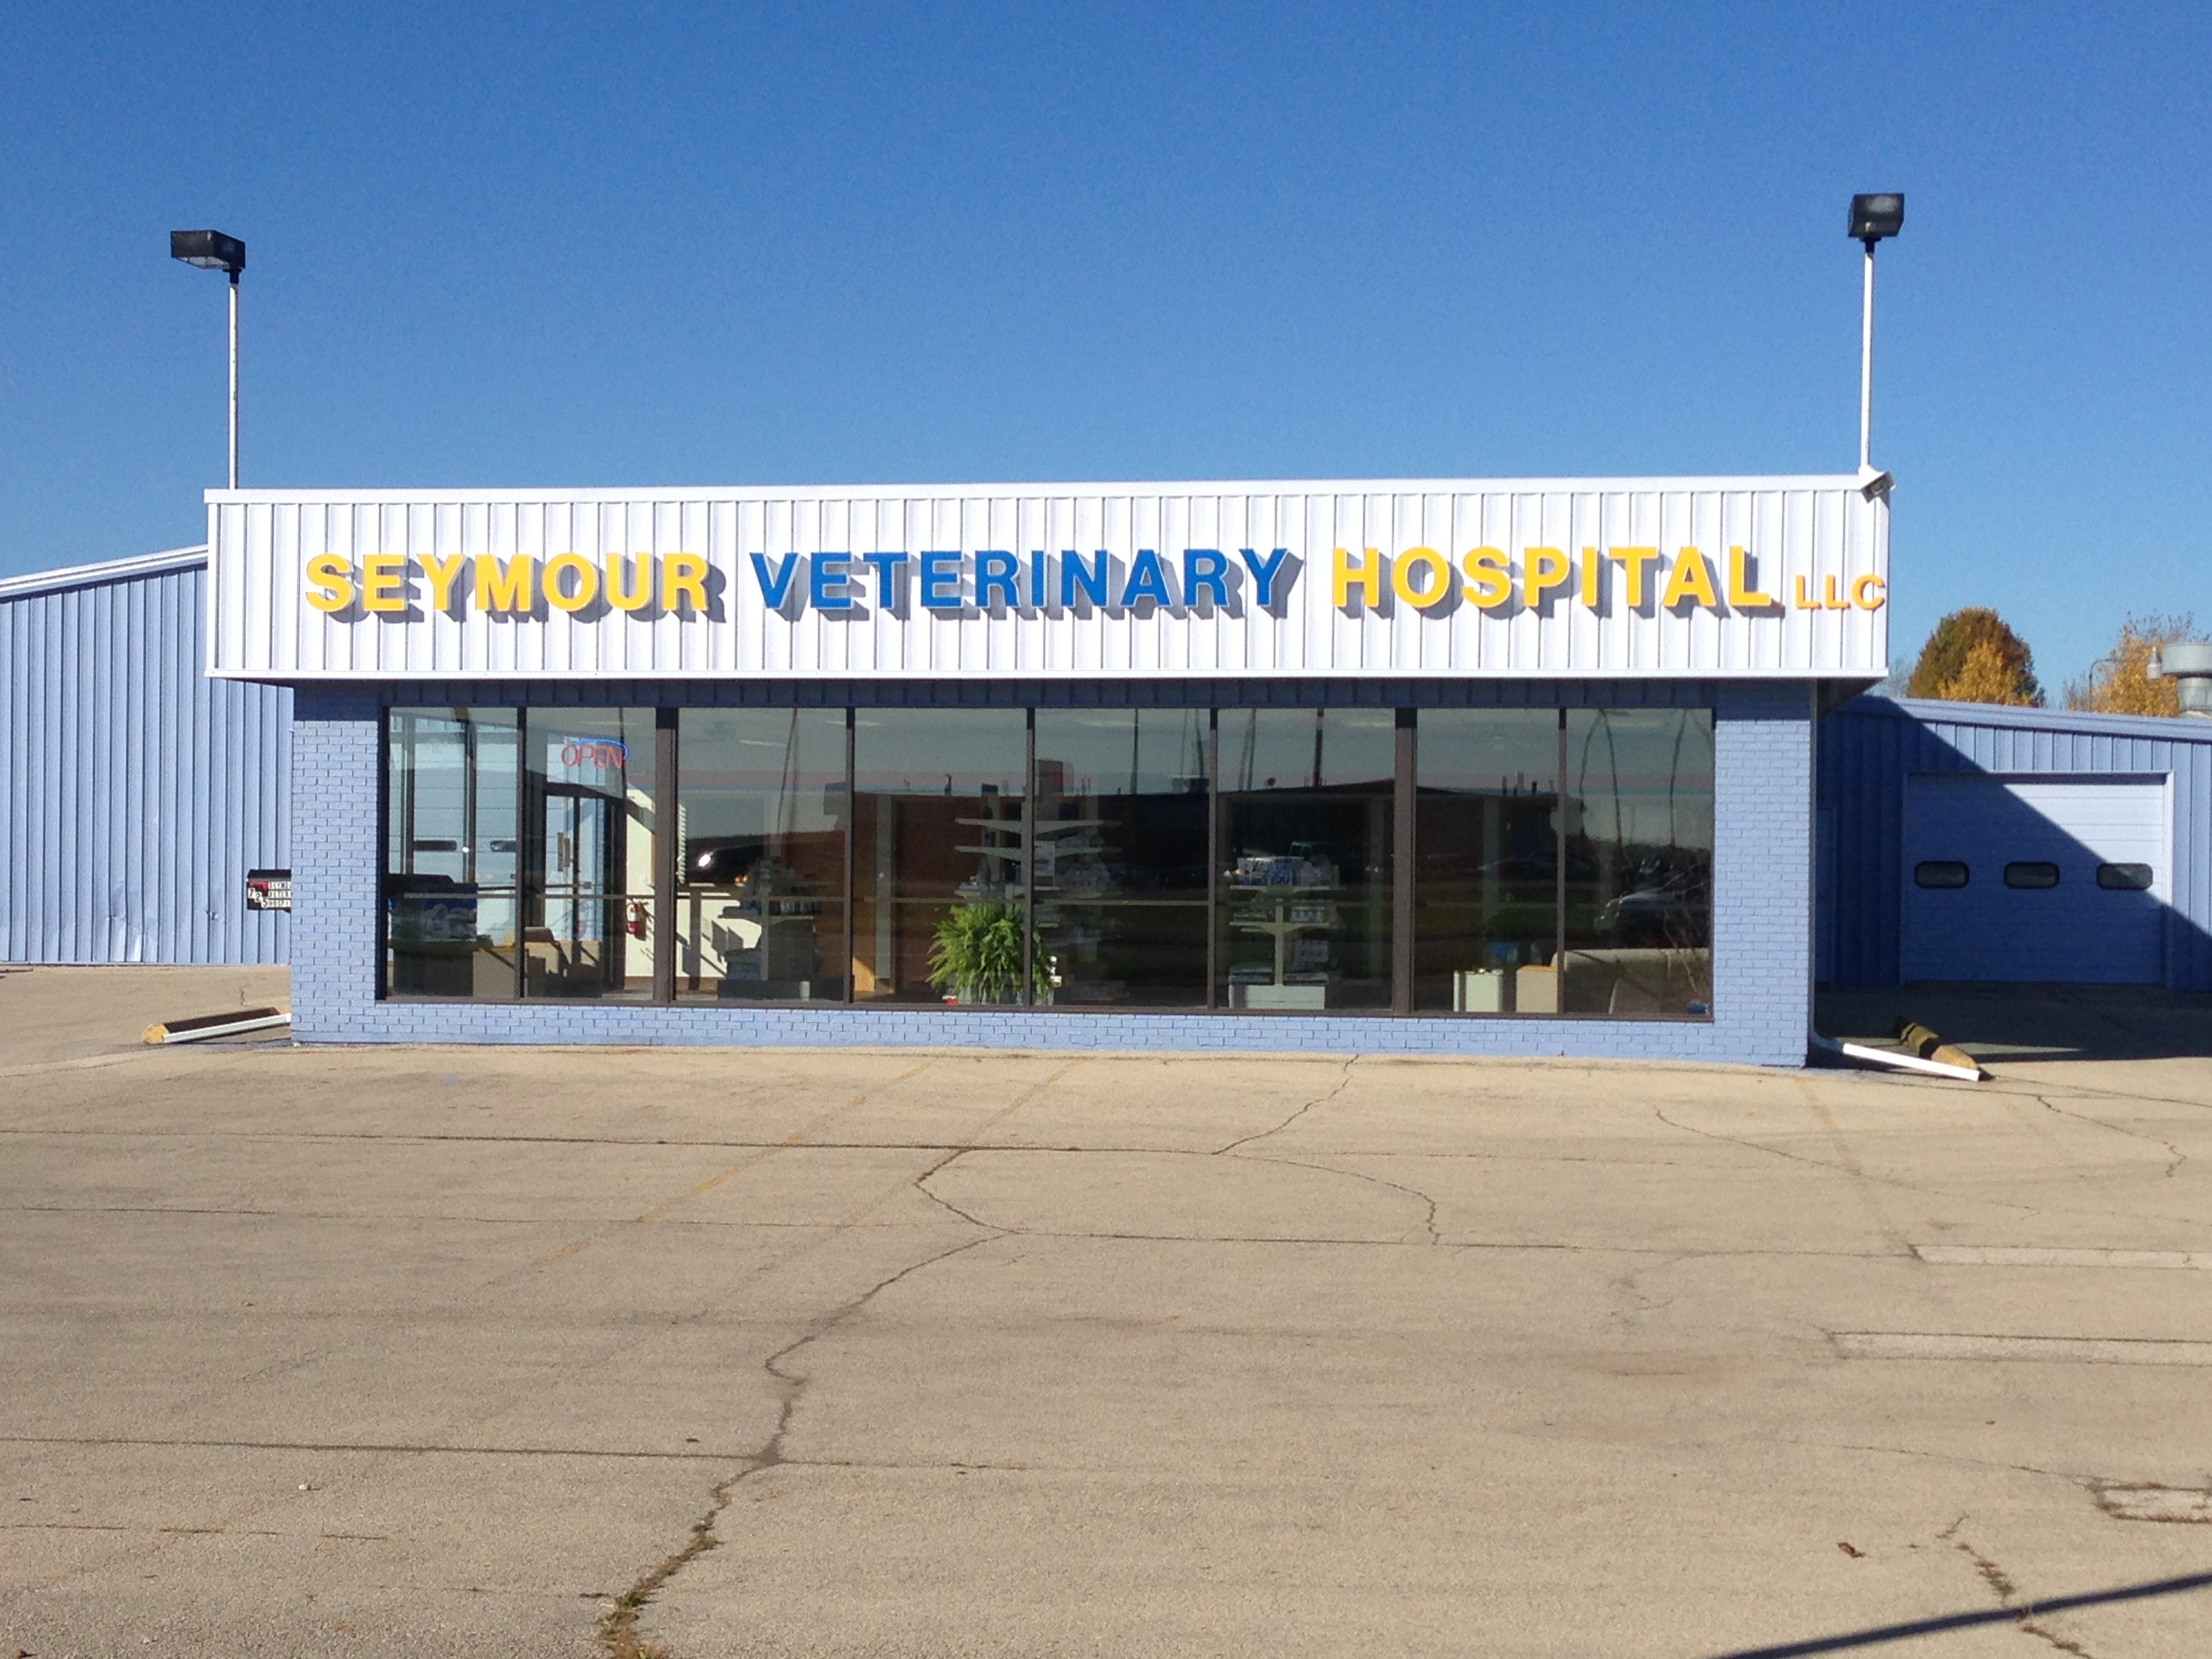 Seymour Veterinary Hospital LLC